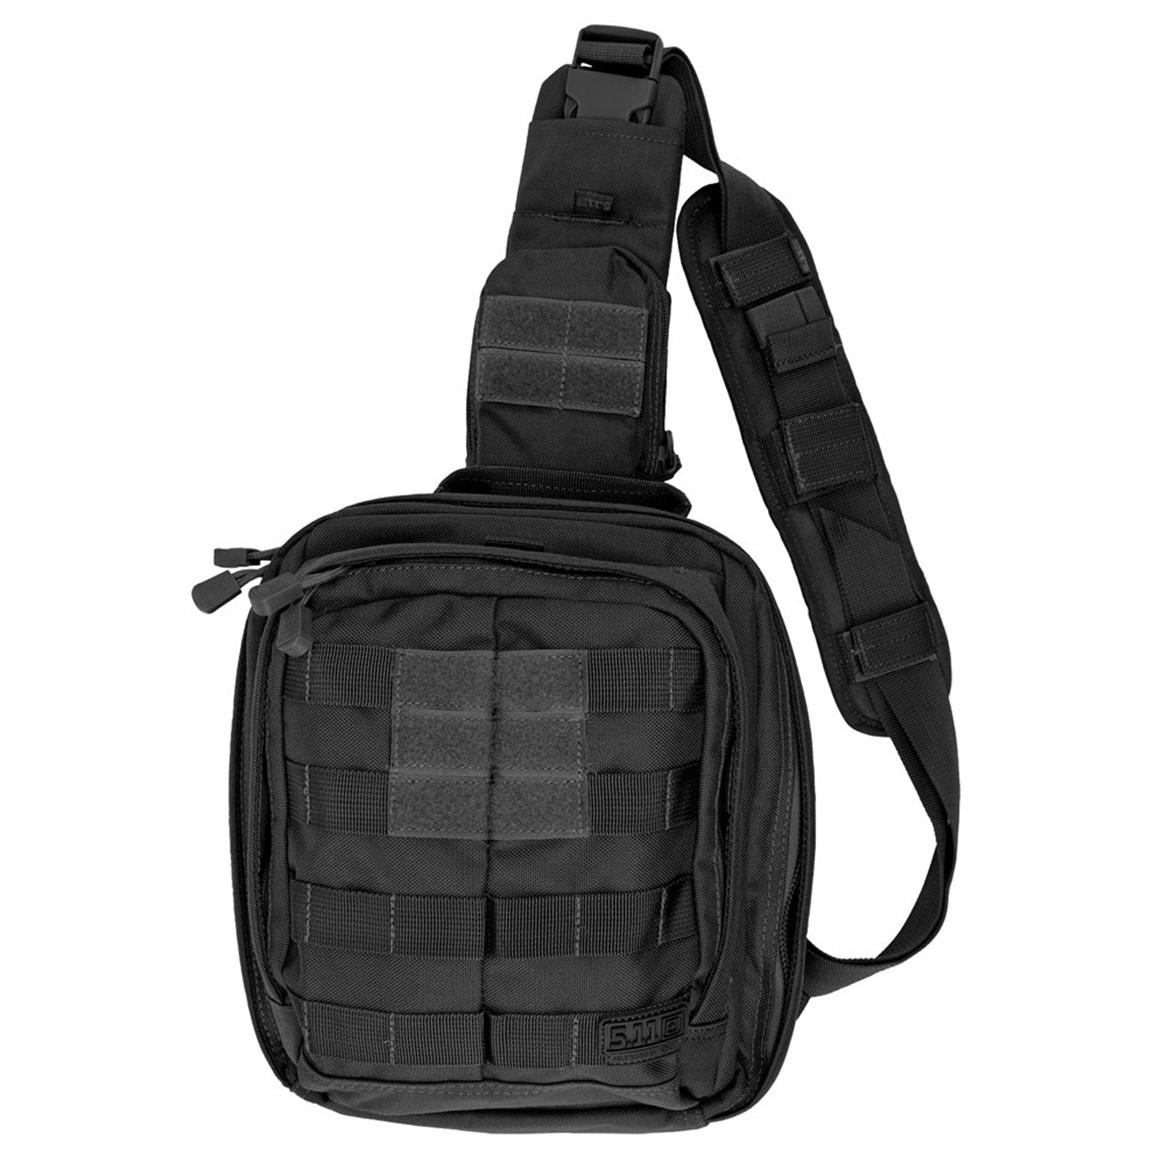 5.11 Tactical® RUSH MOAB 6 Pack, Black